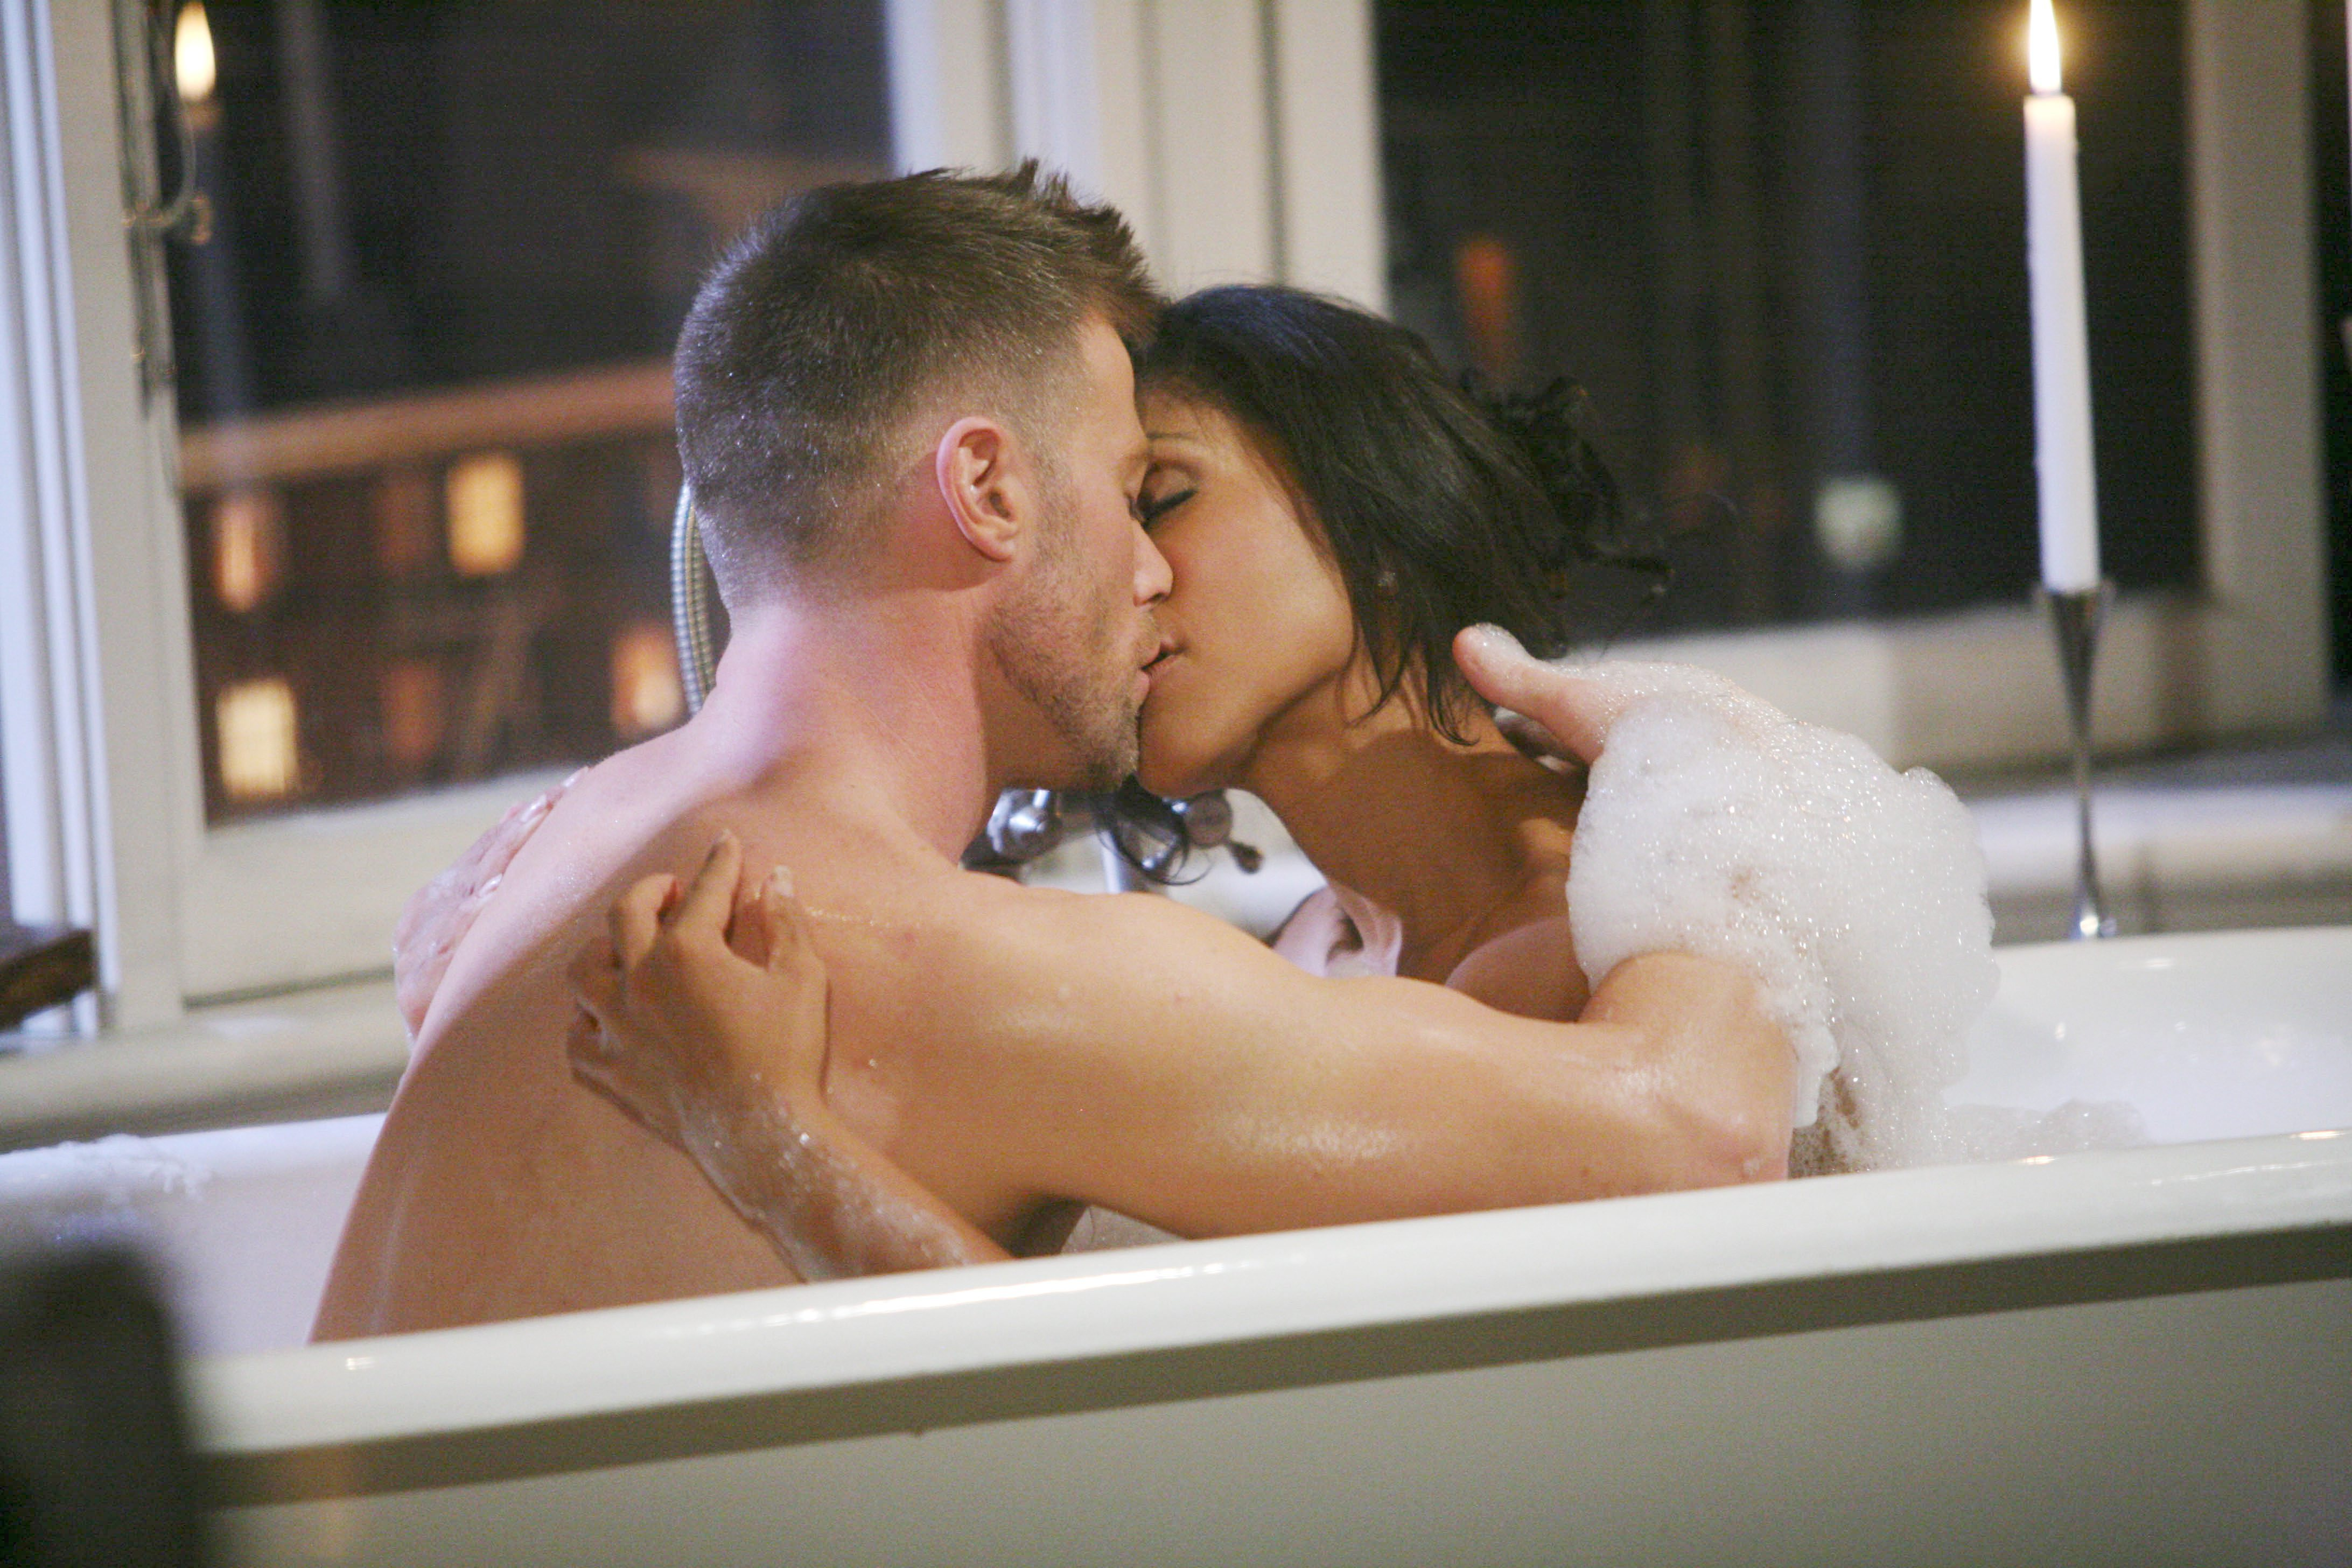 These two are having fun in the tub.